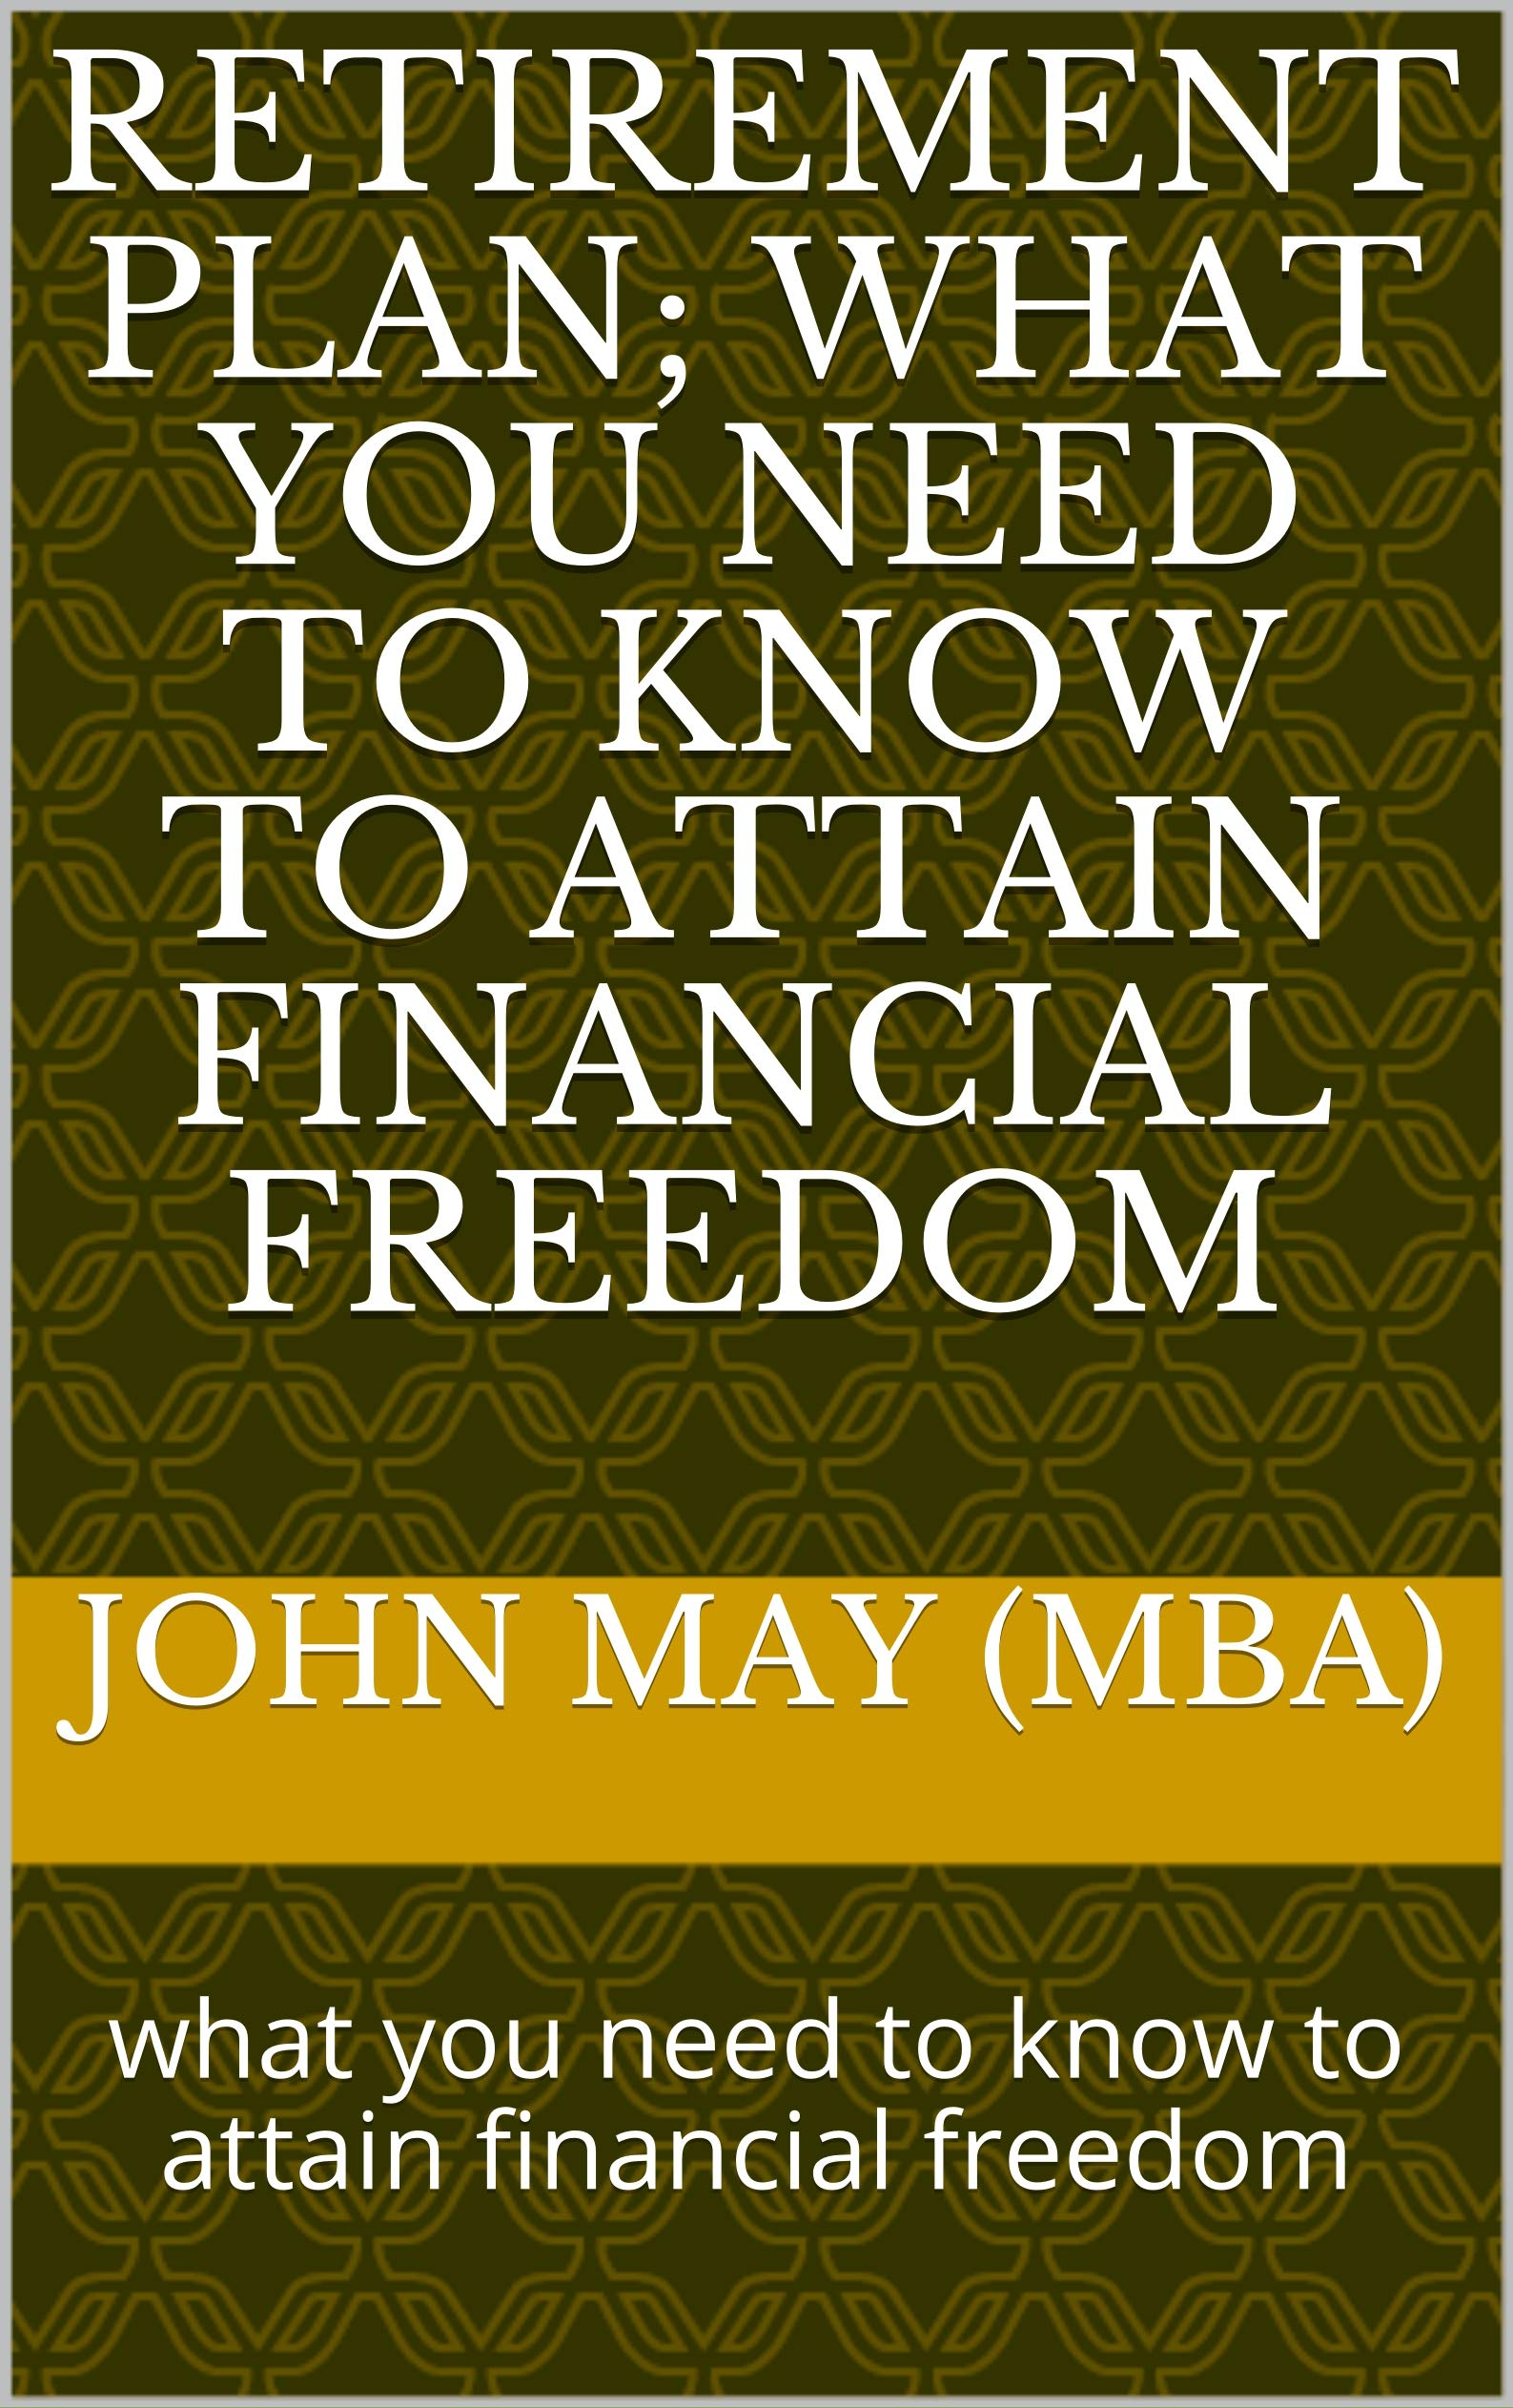 retirement plan; what you need to know to attain financial freedom: what you need to know to attain financial freedom